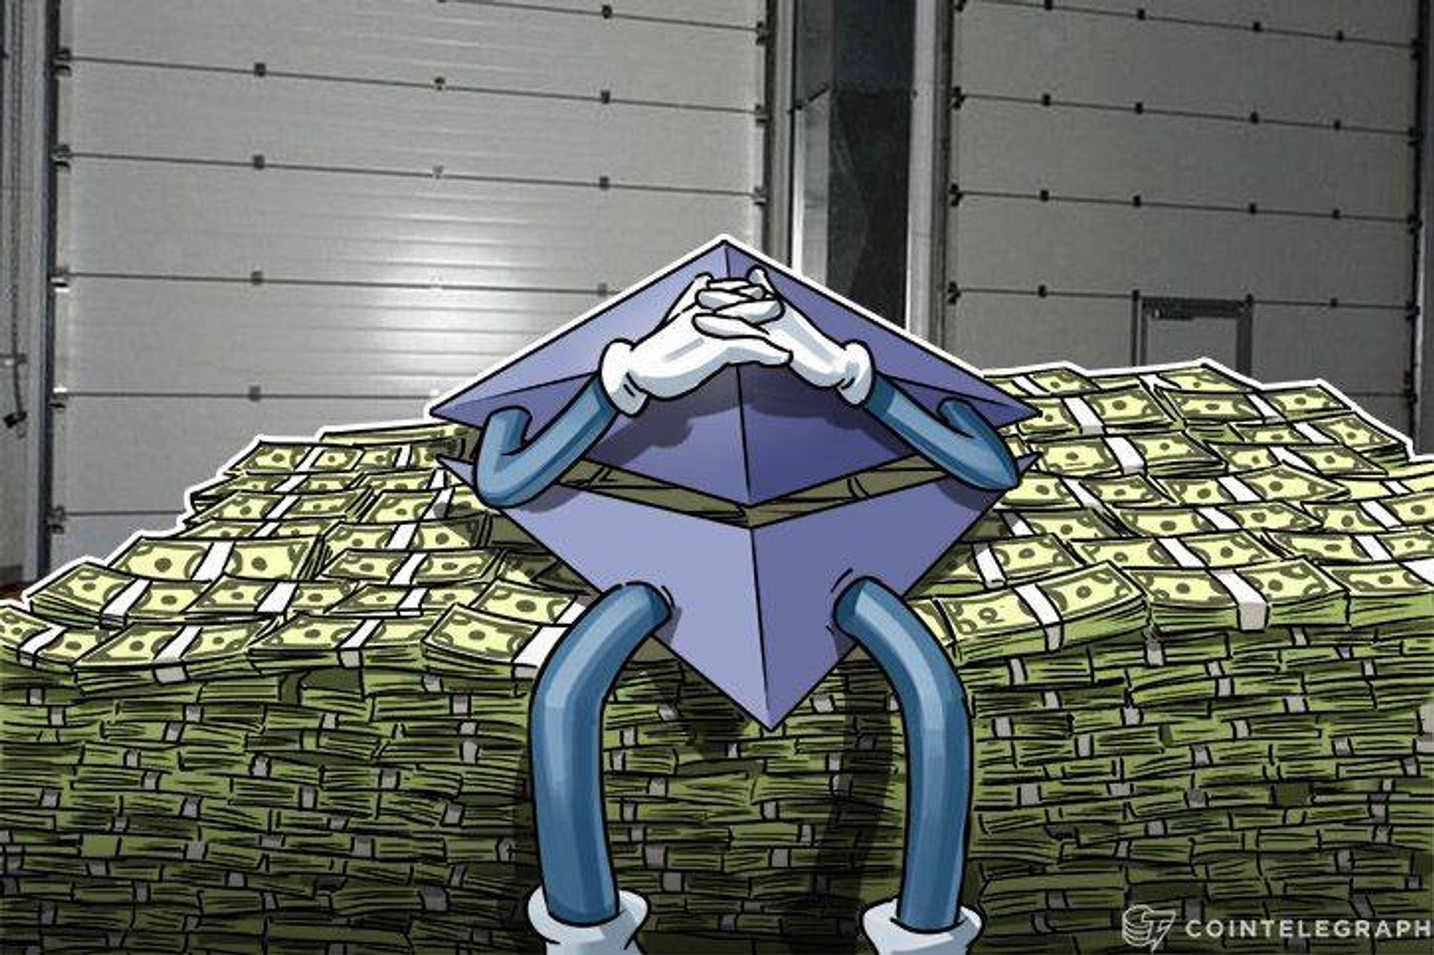 Reddit Co-Founder Says Ethereum Price Will Reach $1,500 This Year